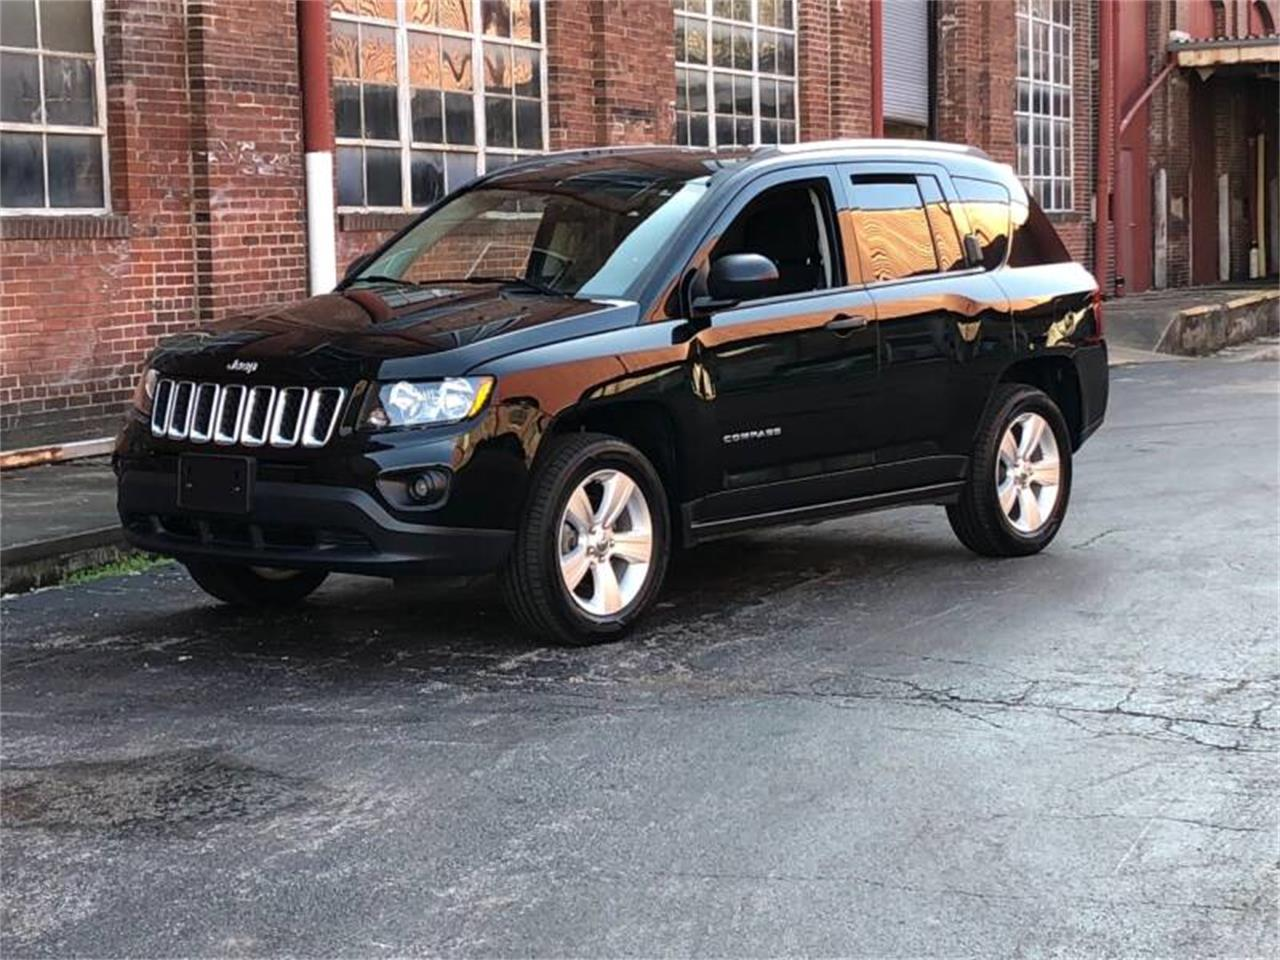 for sale 2014 jeep compass in saint charles, missouri cars - saint charles, mo at geebo